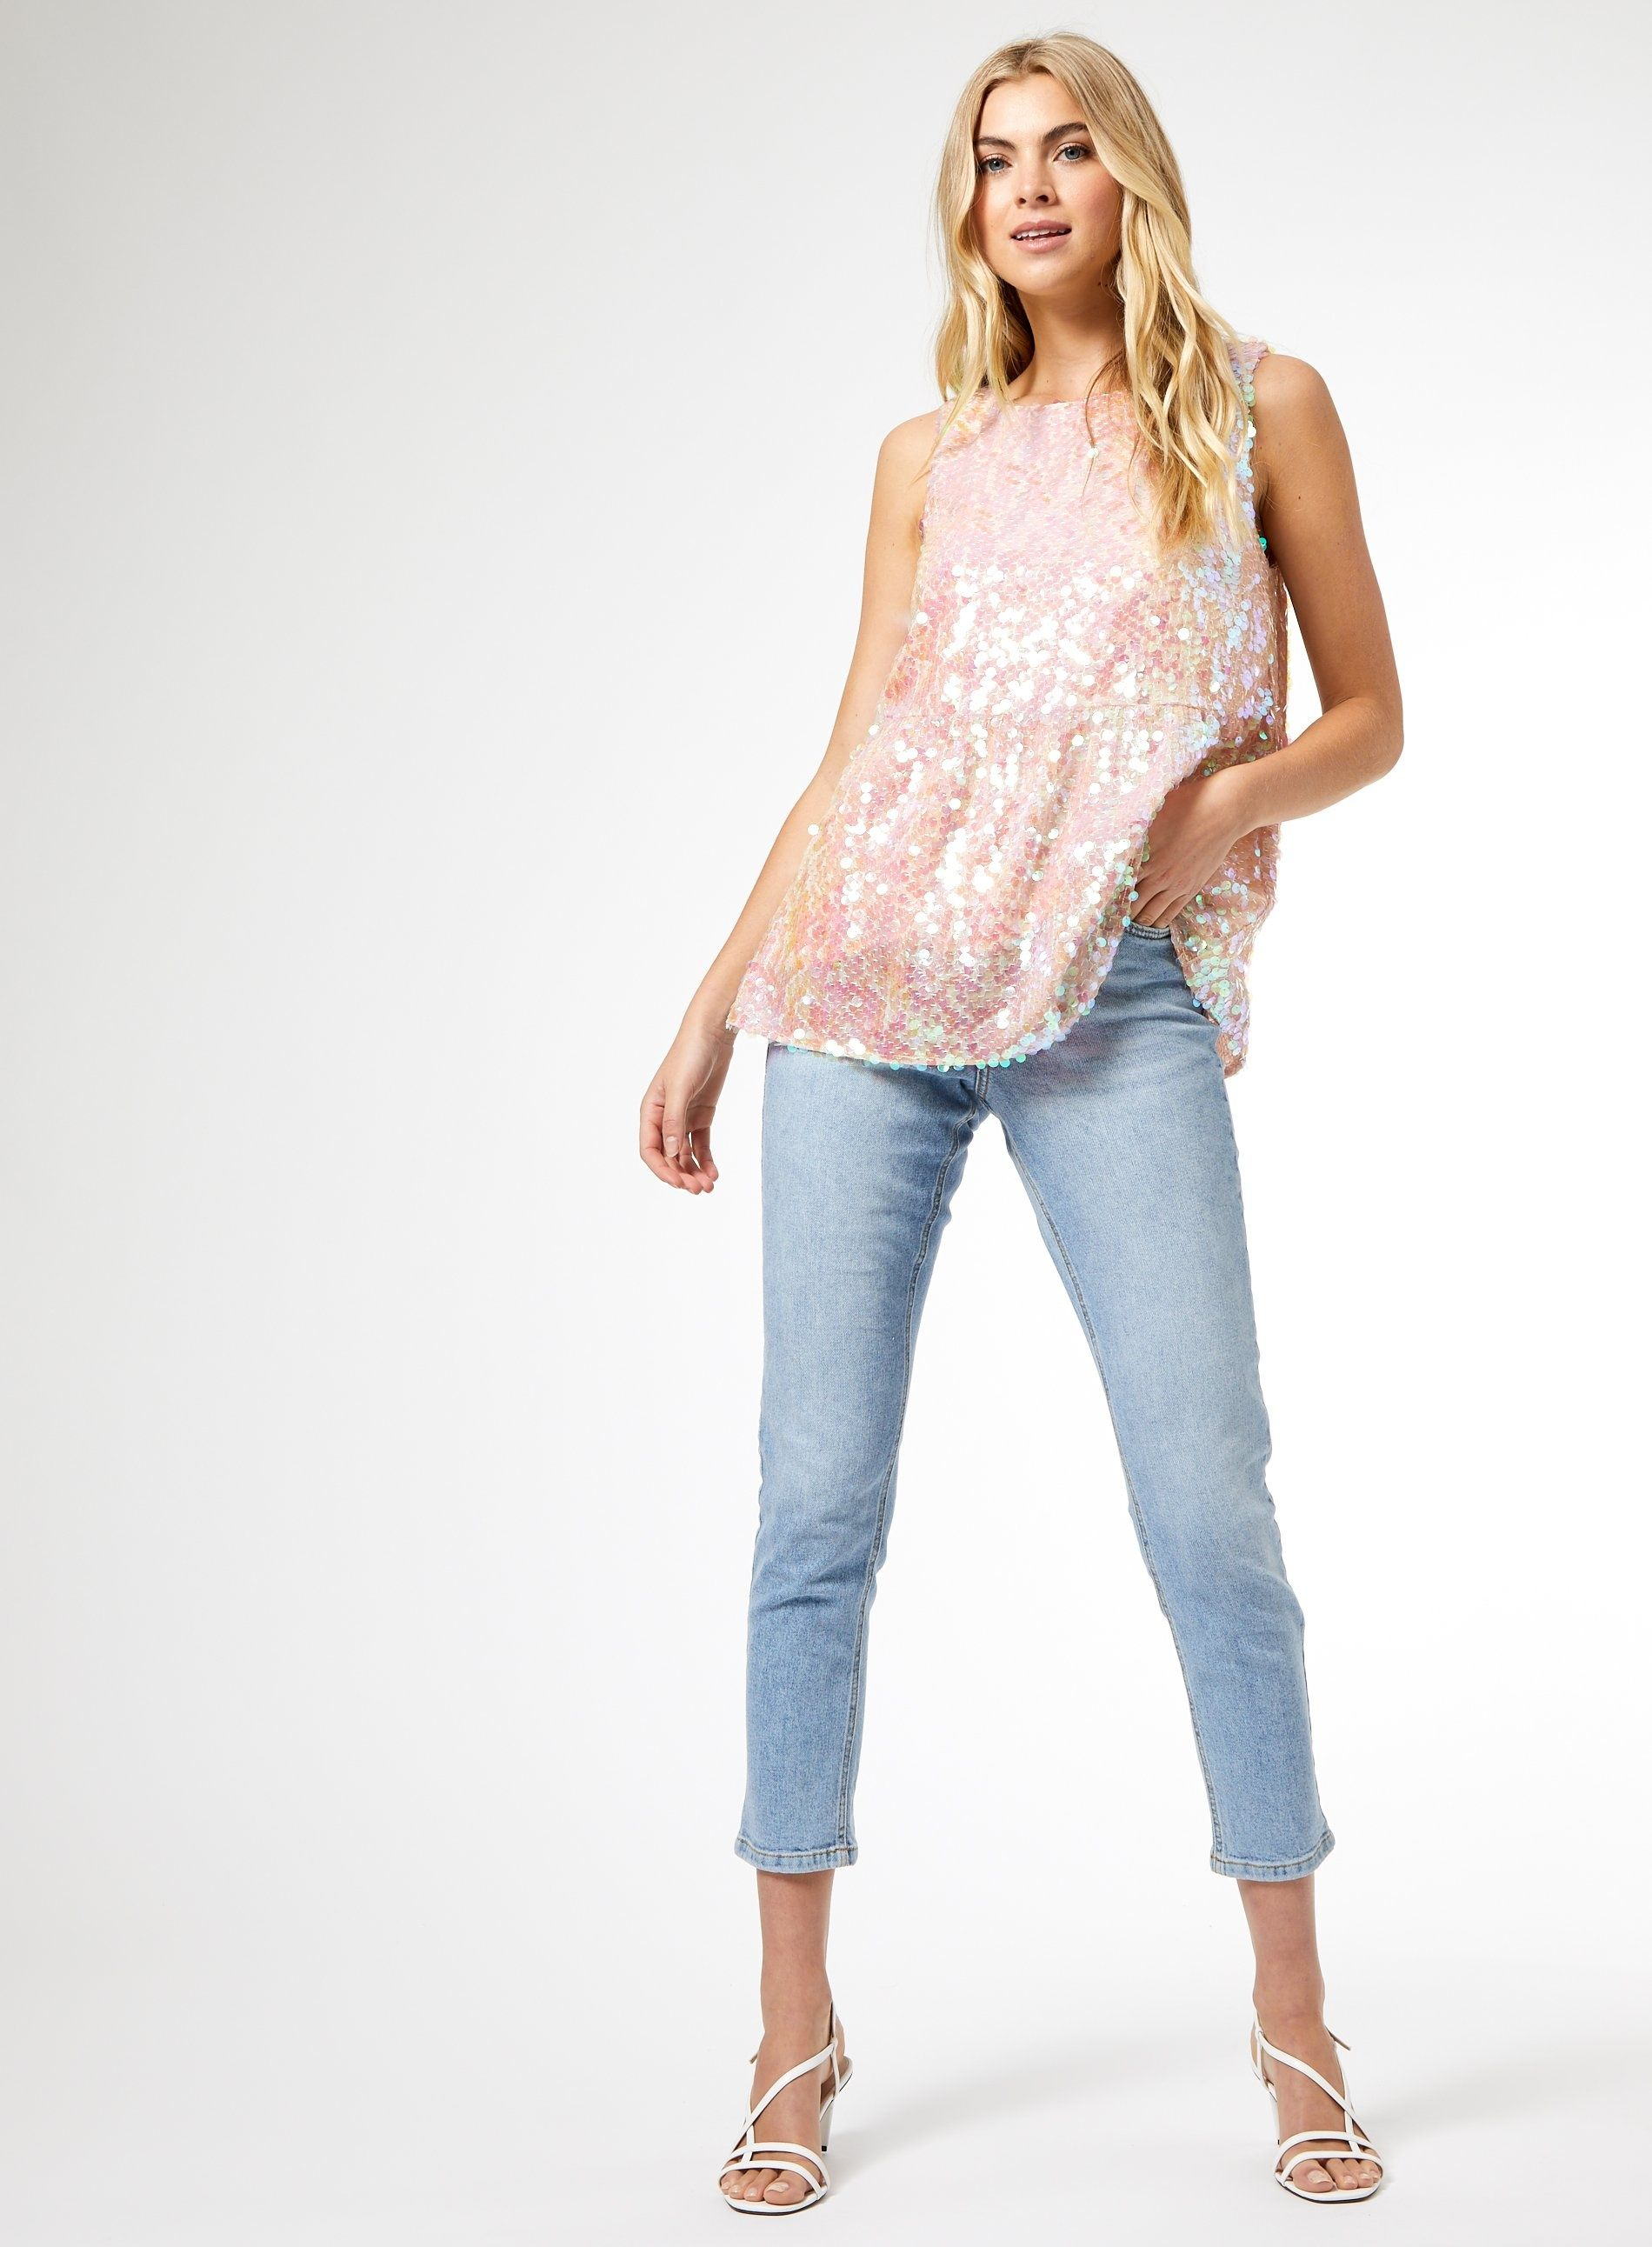 Dorothy Perkins Womens Pink Sequin Tiered Top Round Neck Sleeveless Blouse